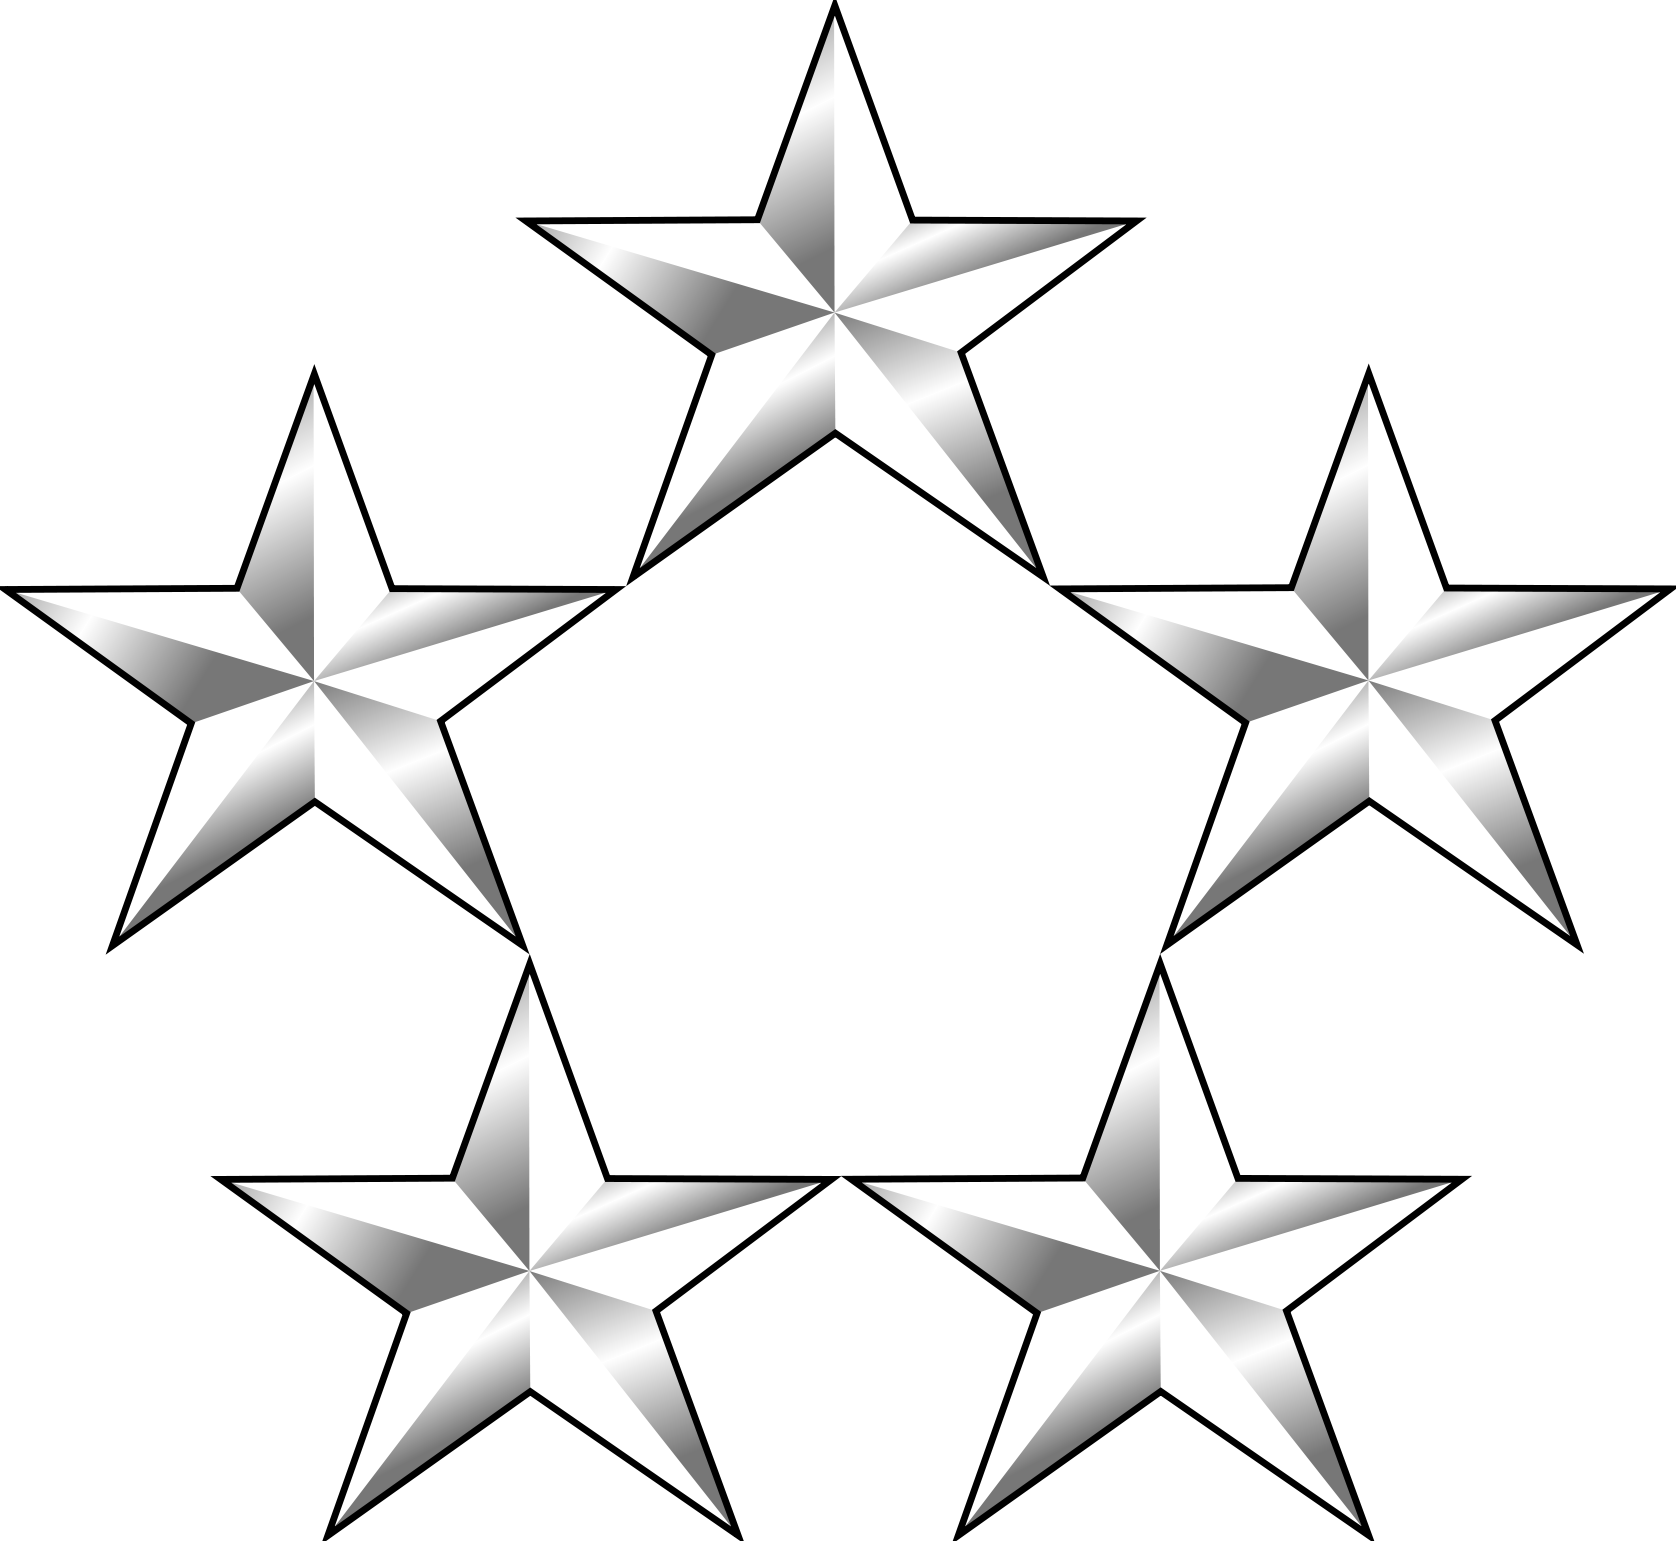 5 stars png. File star wikimedia commons